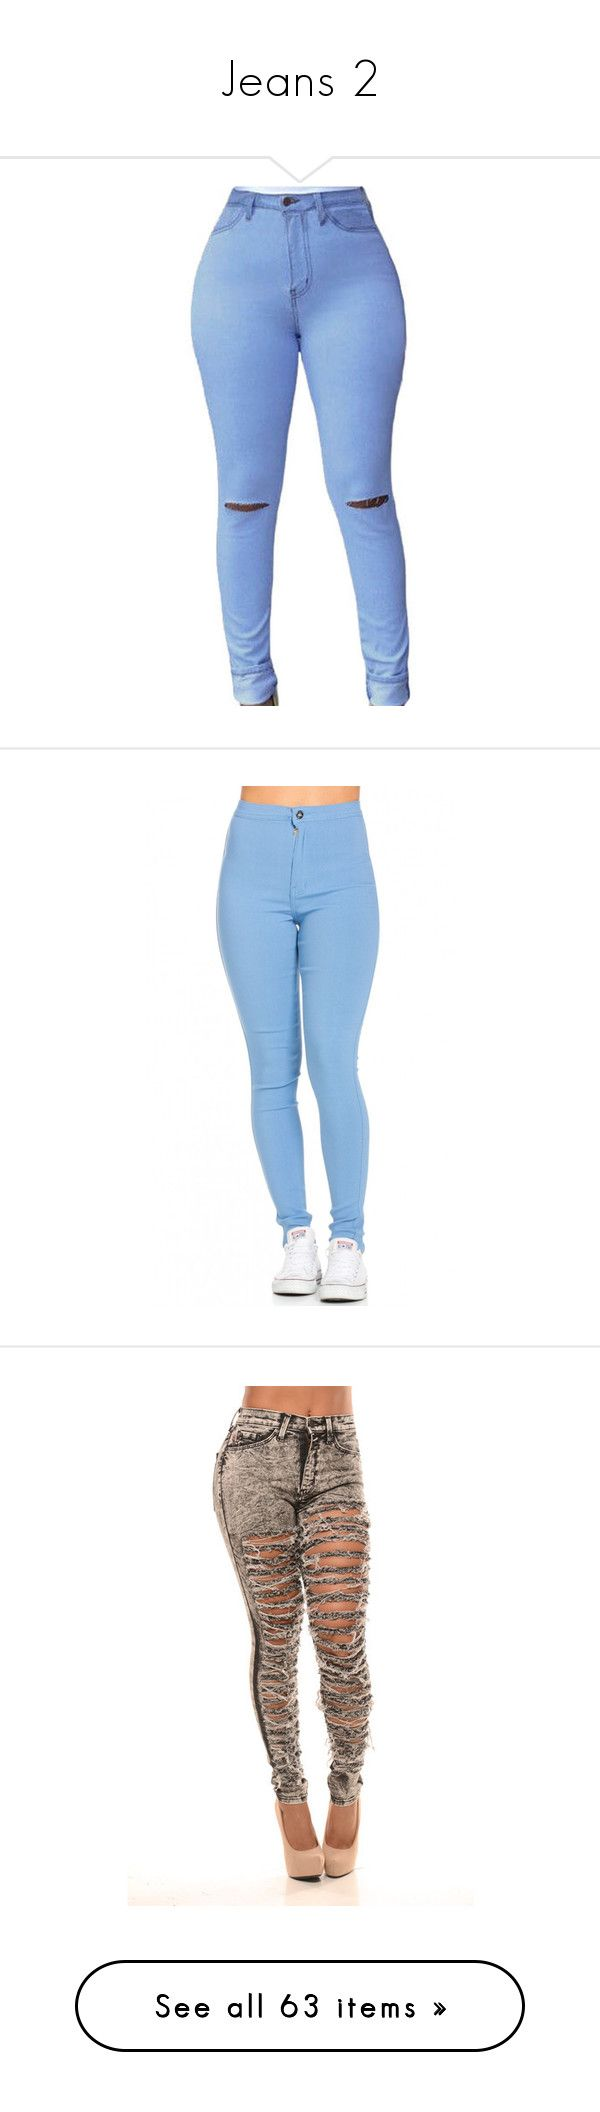 """""""Jeans 2"""" by unicornchaby ❤ liked on Polyvore featuring jeans, pants, bottoms, jeans/pants, blue high waisted jeans, high-waisted jeans, denim skinny jeans, skinny jeans, light blue high waisted jeans and pantalones"""